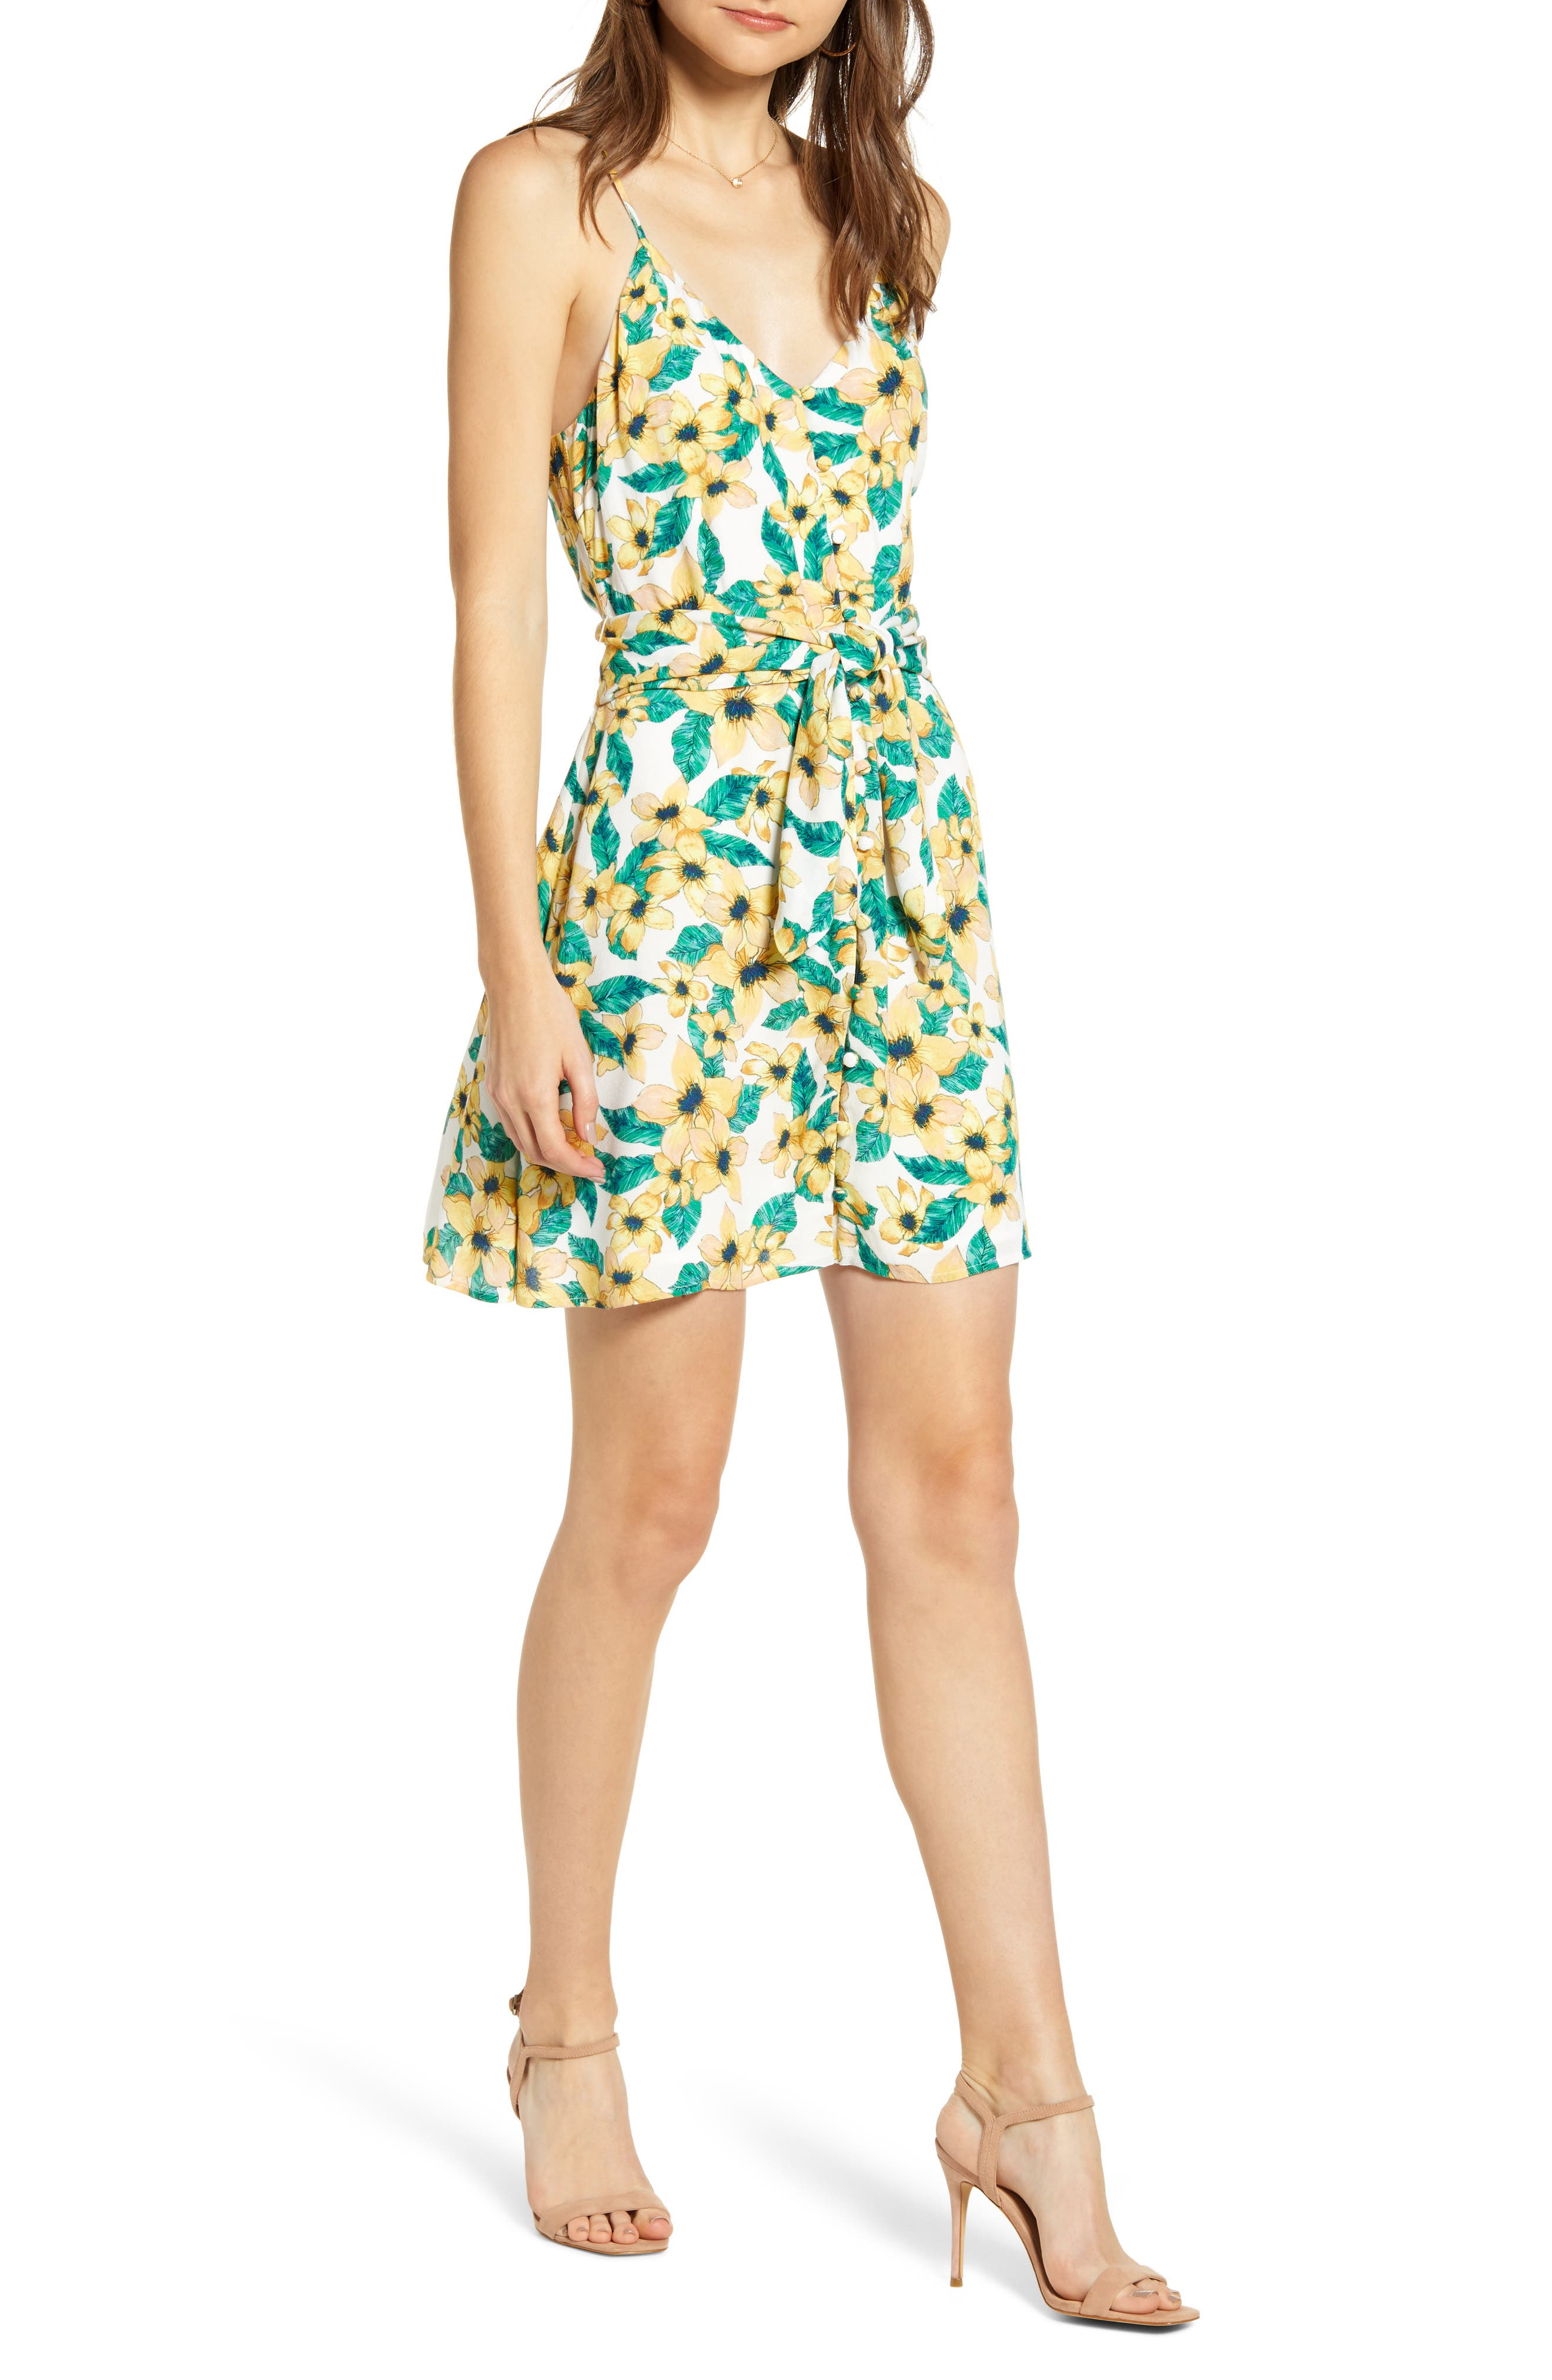 Cupcakes And Cashmere Floral Tie Waist Sundress, Ivory